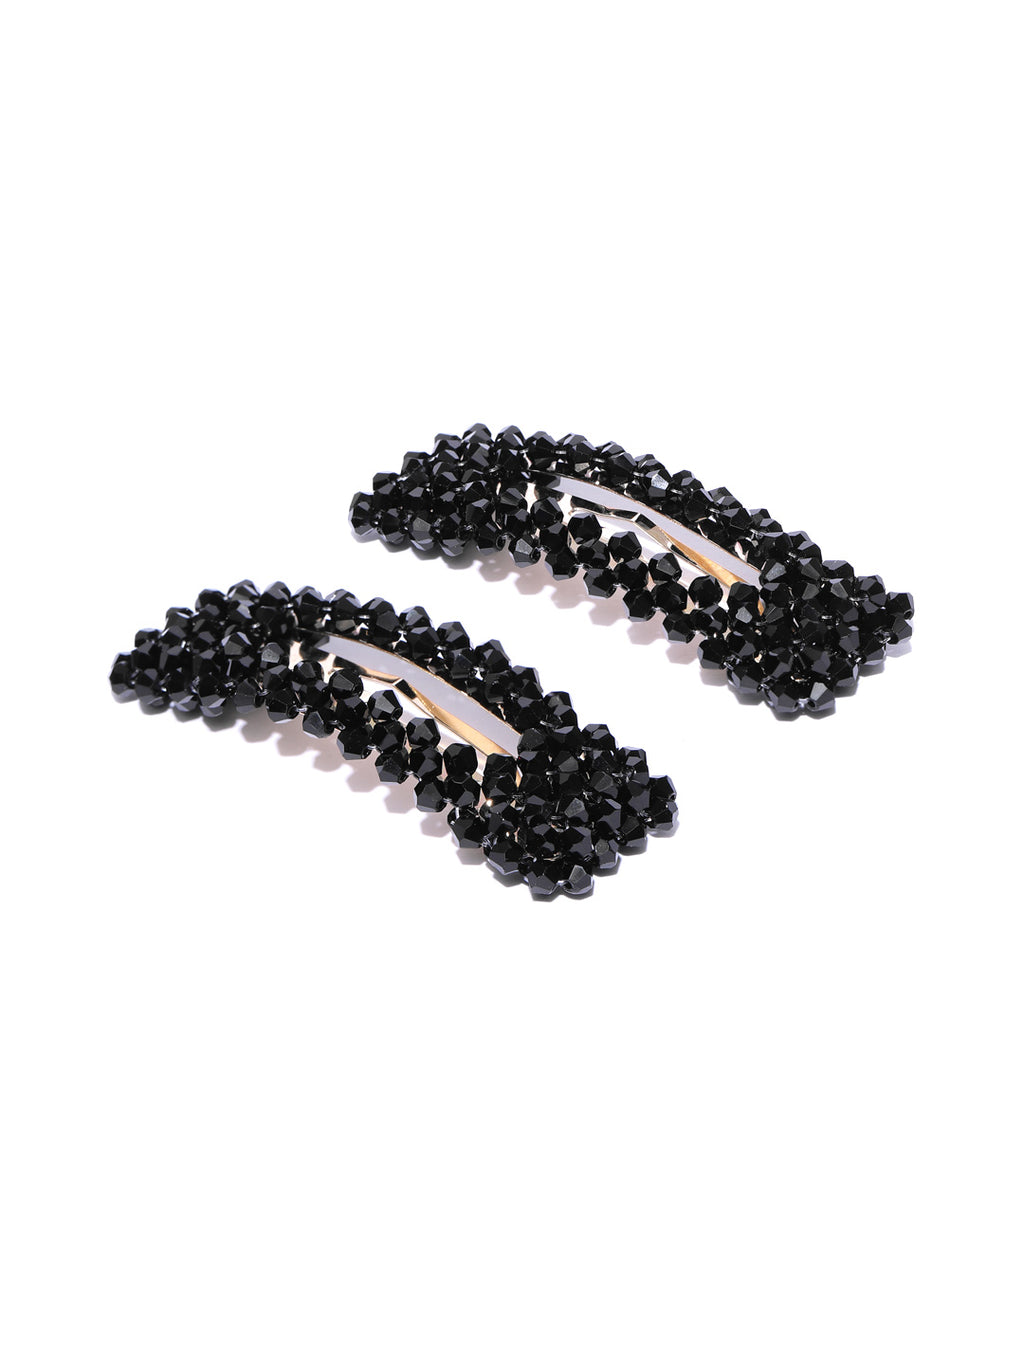 Blueberry set of 2 black crystal beads detailing hair pins